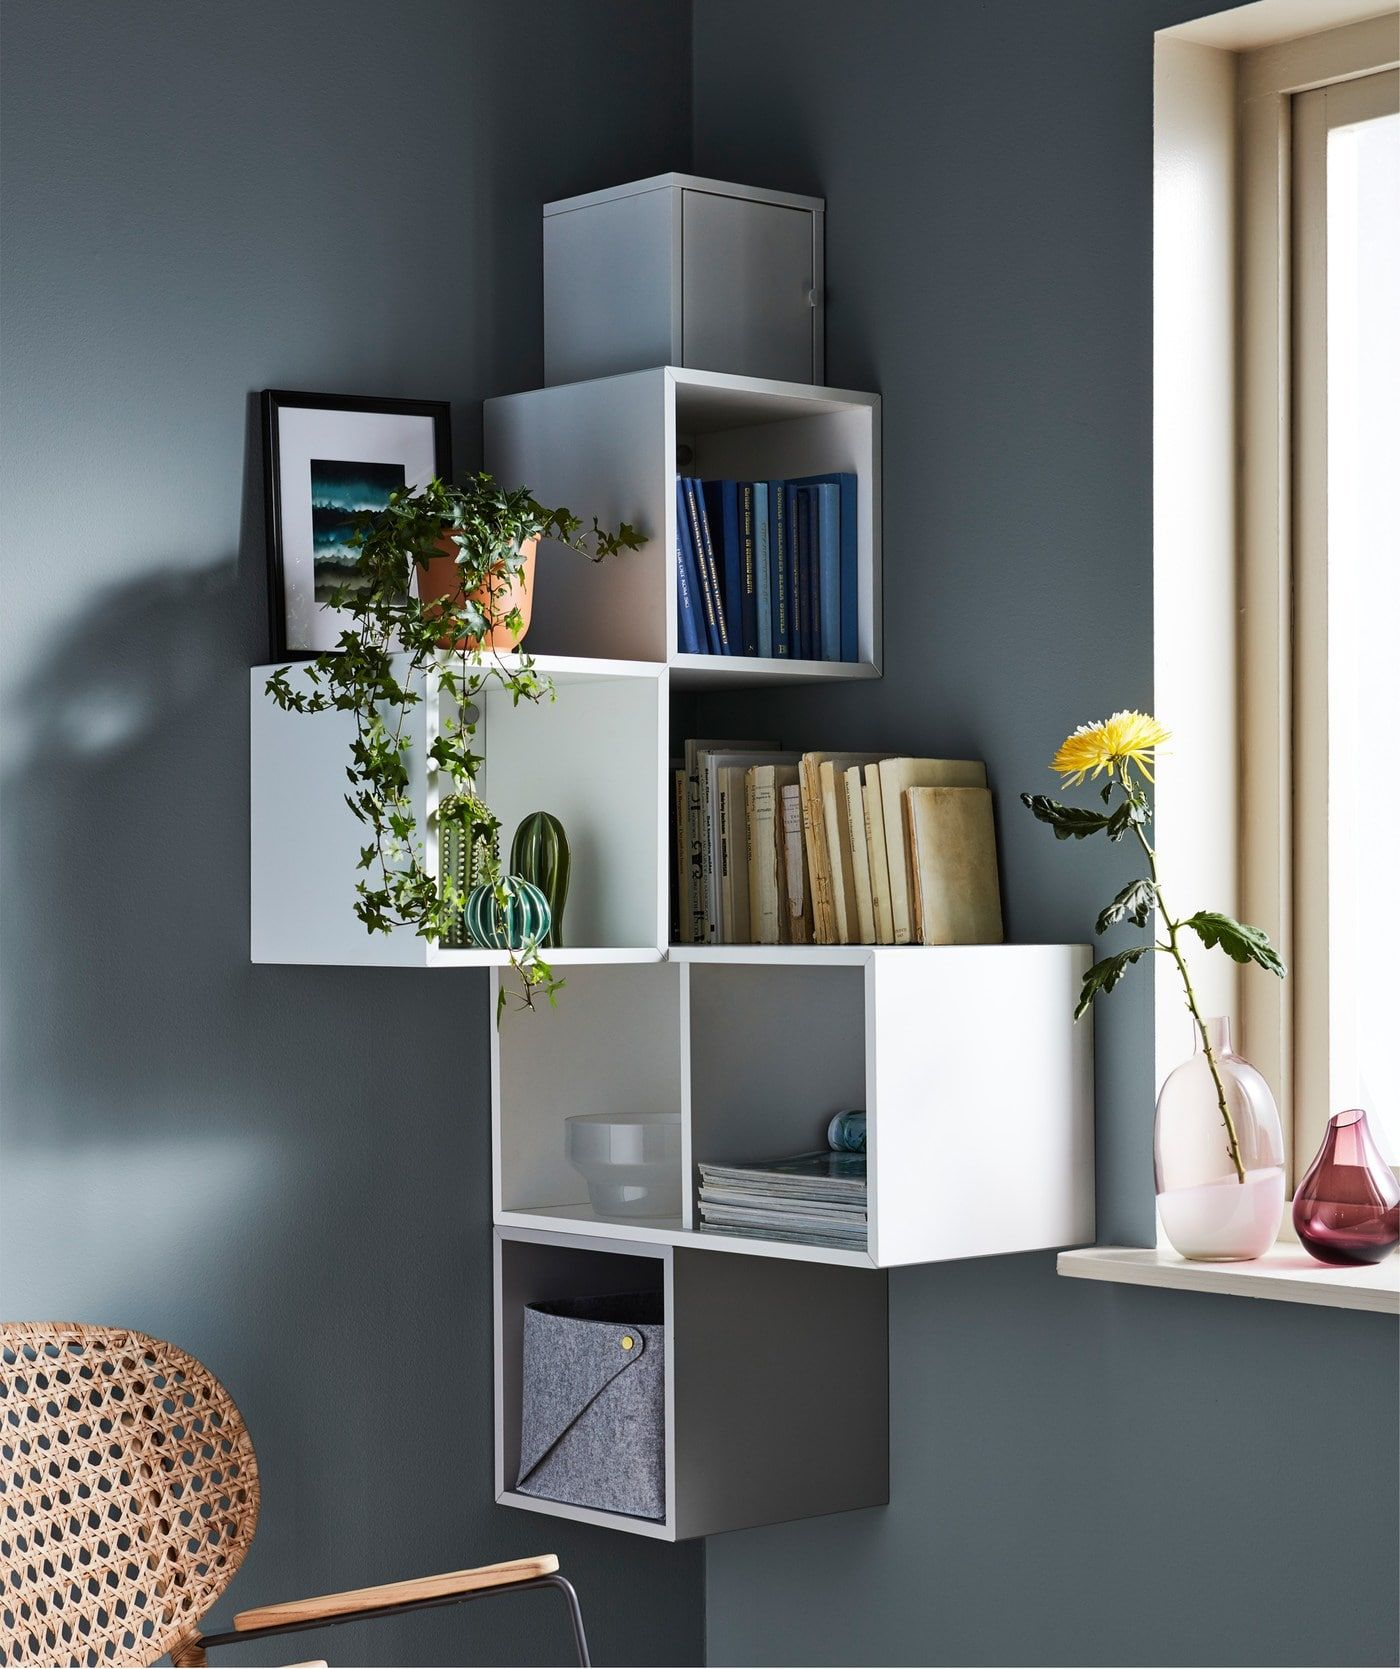 decorative shelves, white square boxes in the corner